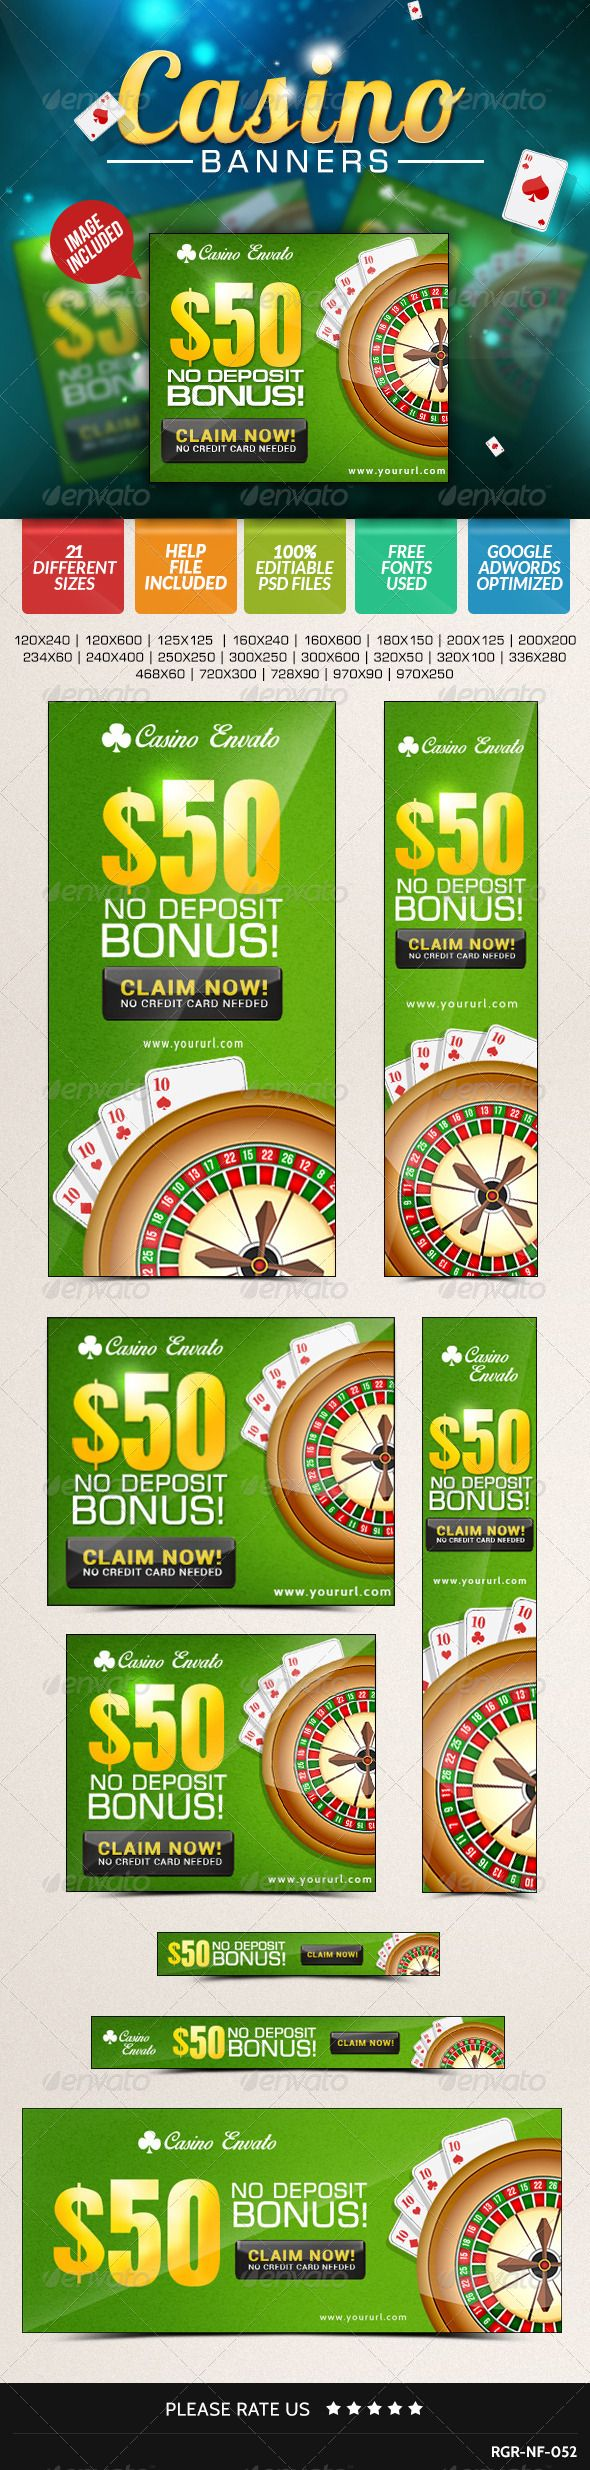 Quality Casino Banner, it is a great looking banner set that helps in promoting your products and services.